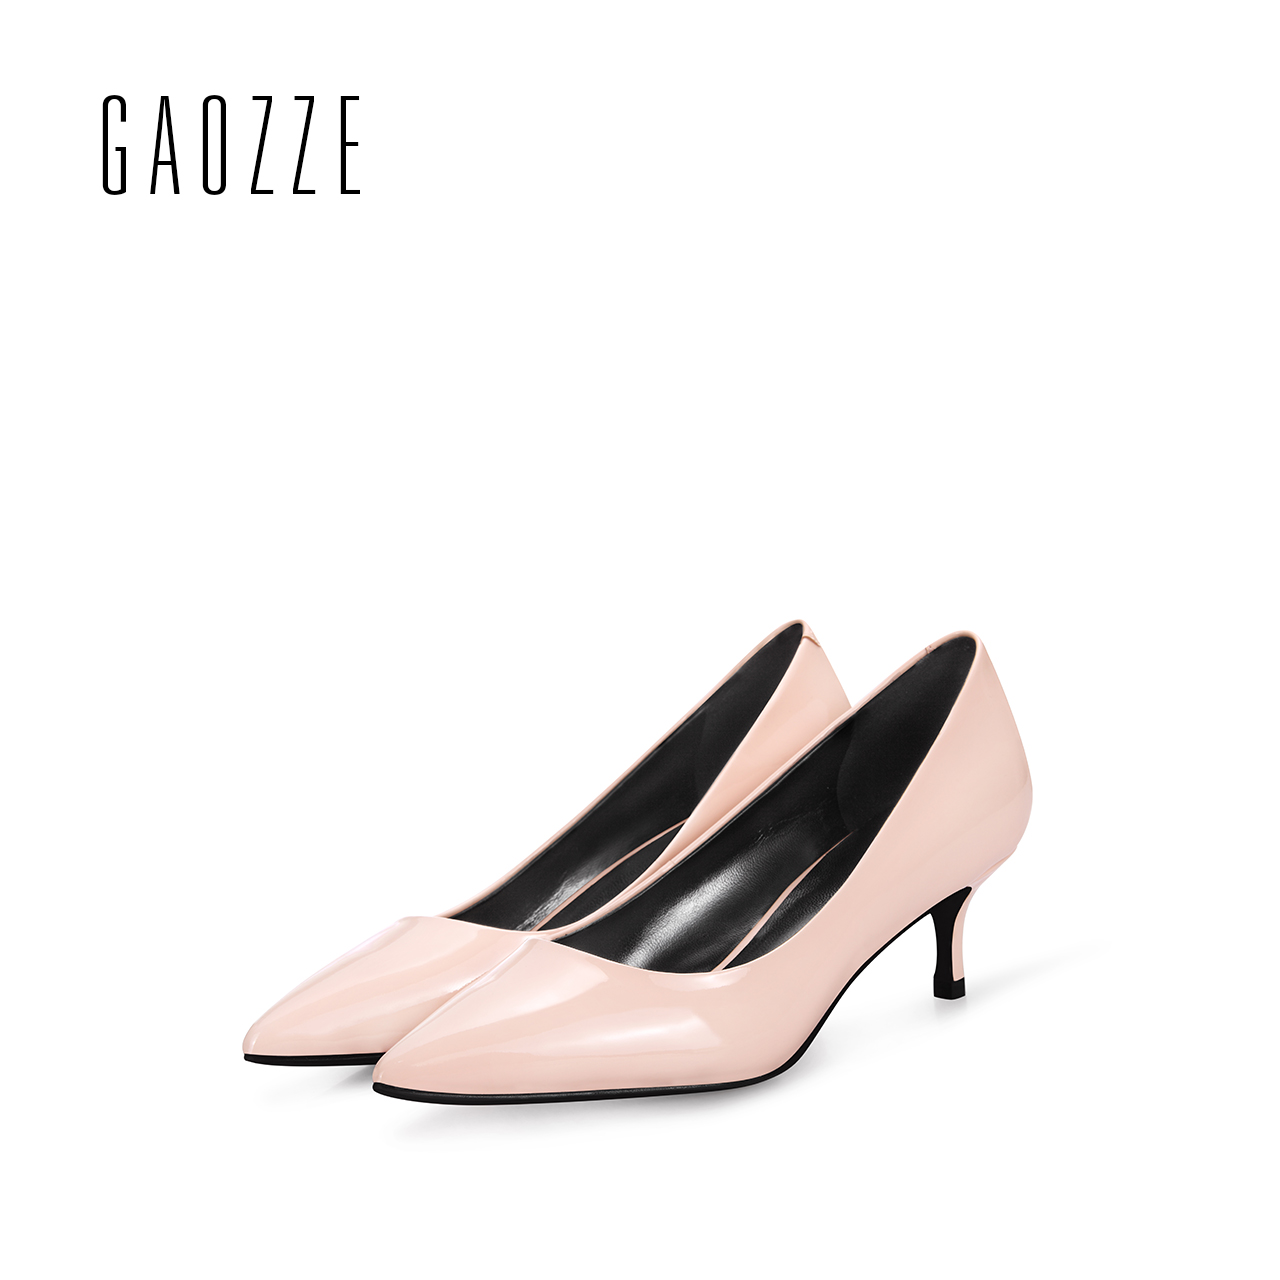 GAOZZE Pointed Toe 4.5CM Stilettos Kitten Heels Genuine Leather Women Shoes Pumps Solid Color Female High Heels Office Shoes bigtree office lady dress shoes women high heels pointed toe solid string bead sandals concise slingback shoes stilettos 34 40